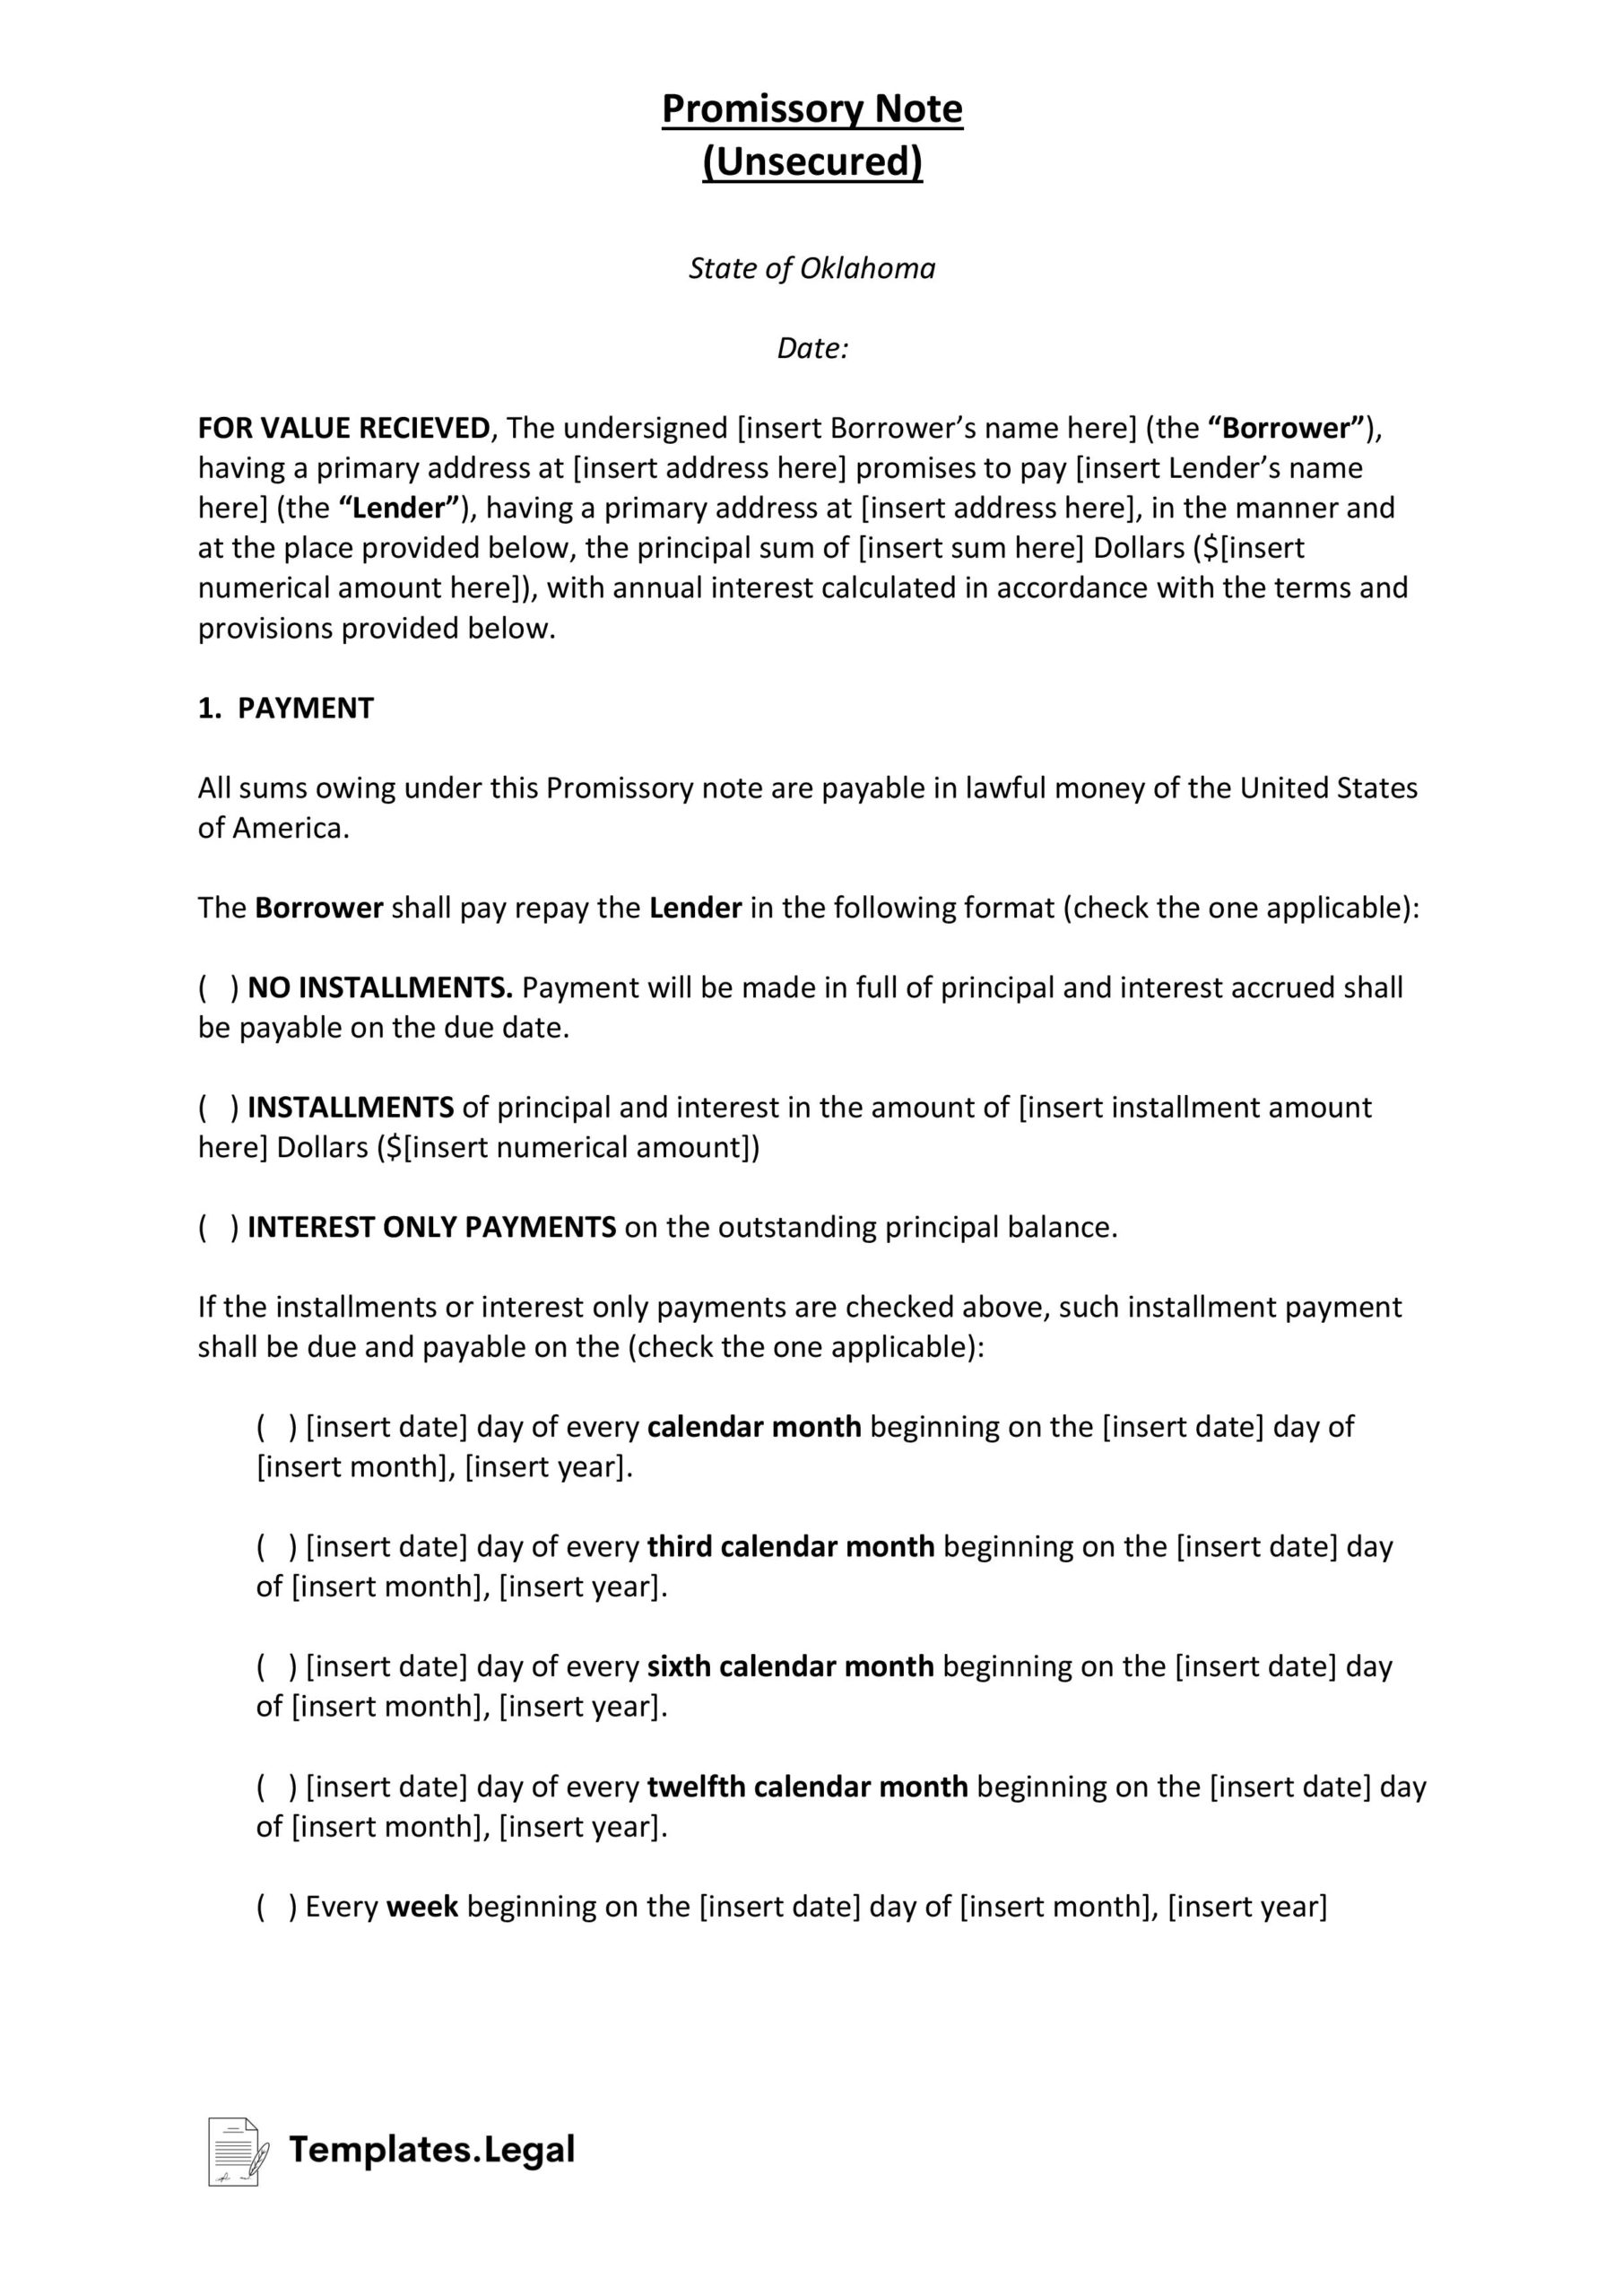 Oklahoma Unsecured Promissory Note - Templates.Legal